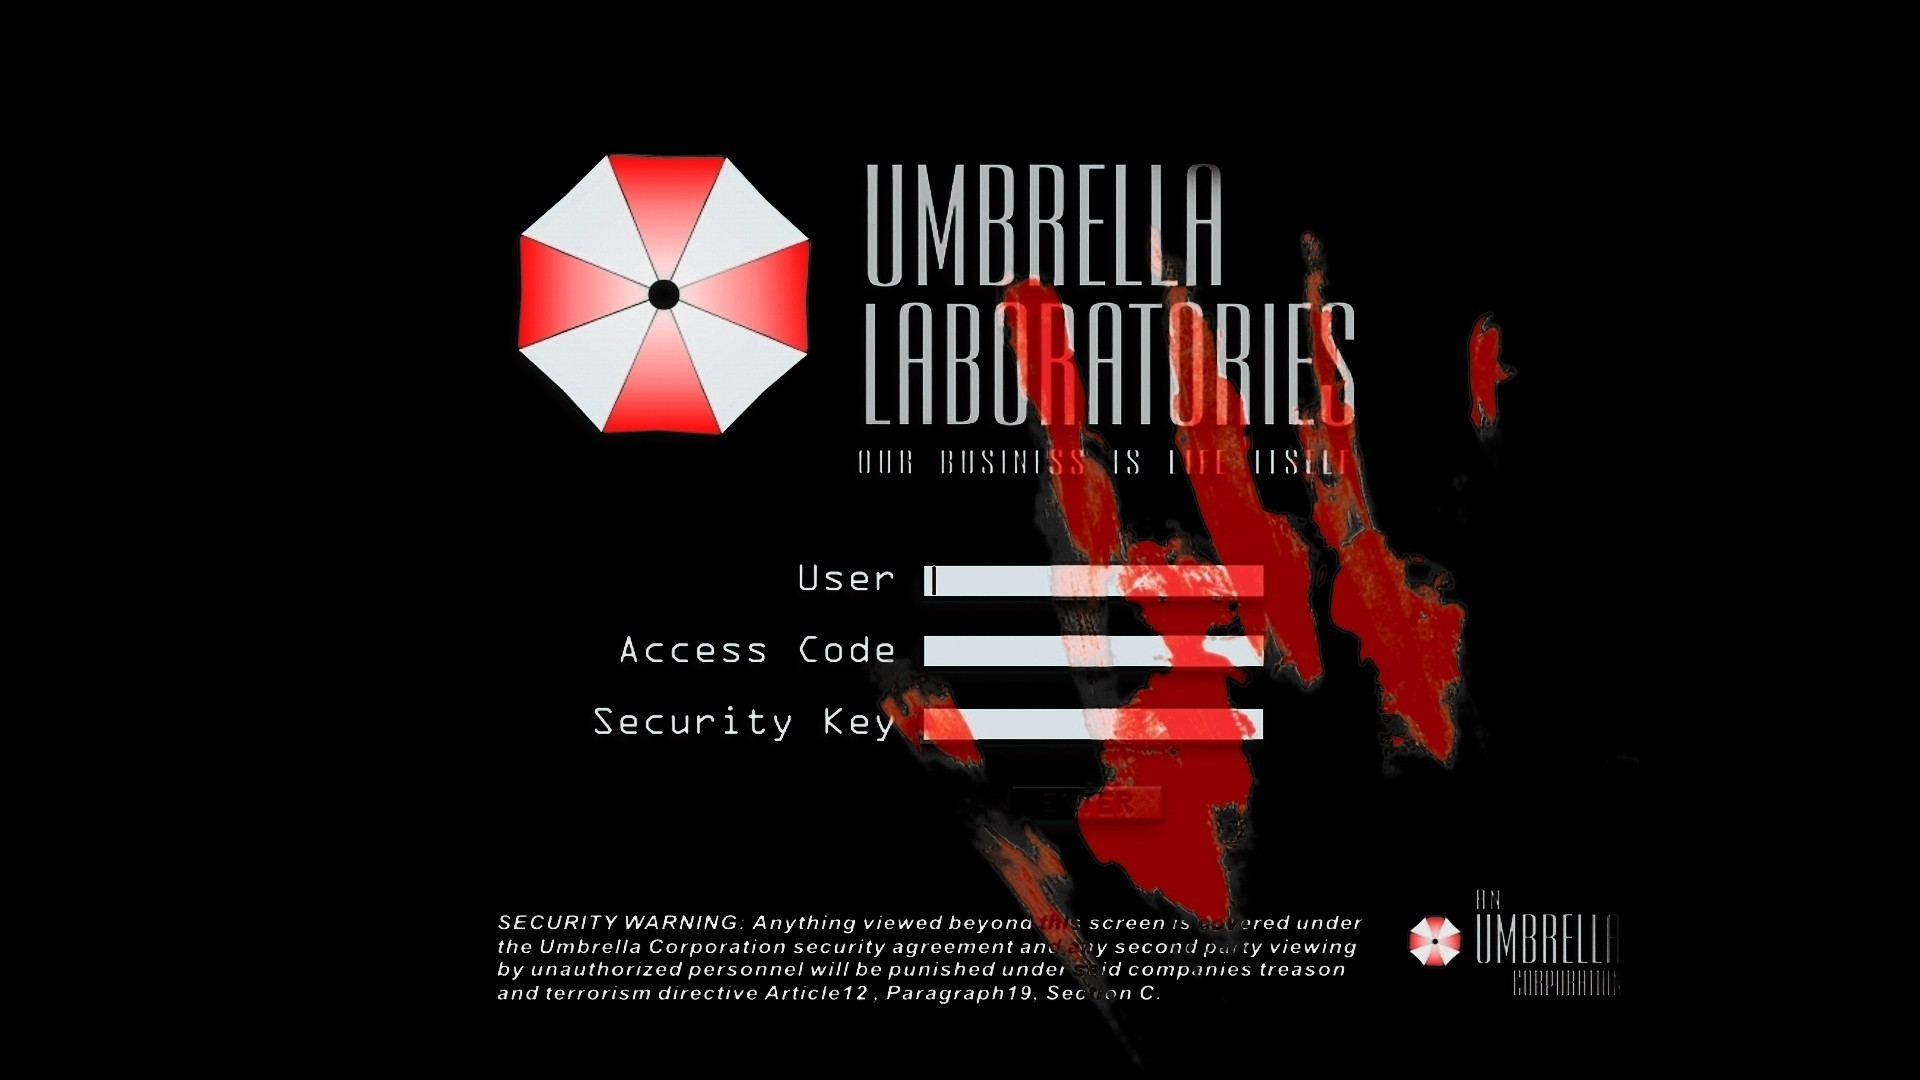 Resident evil umbrella corp wallpaper 72 images 1920x1080 report rss umbrella corporation wallpaper view original voltagebd Images